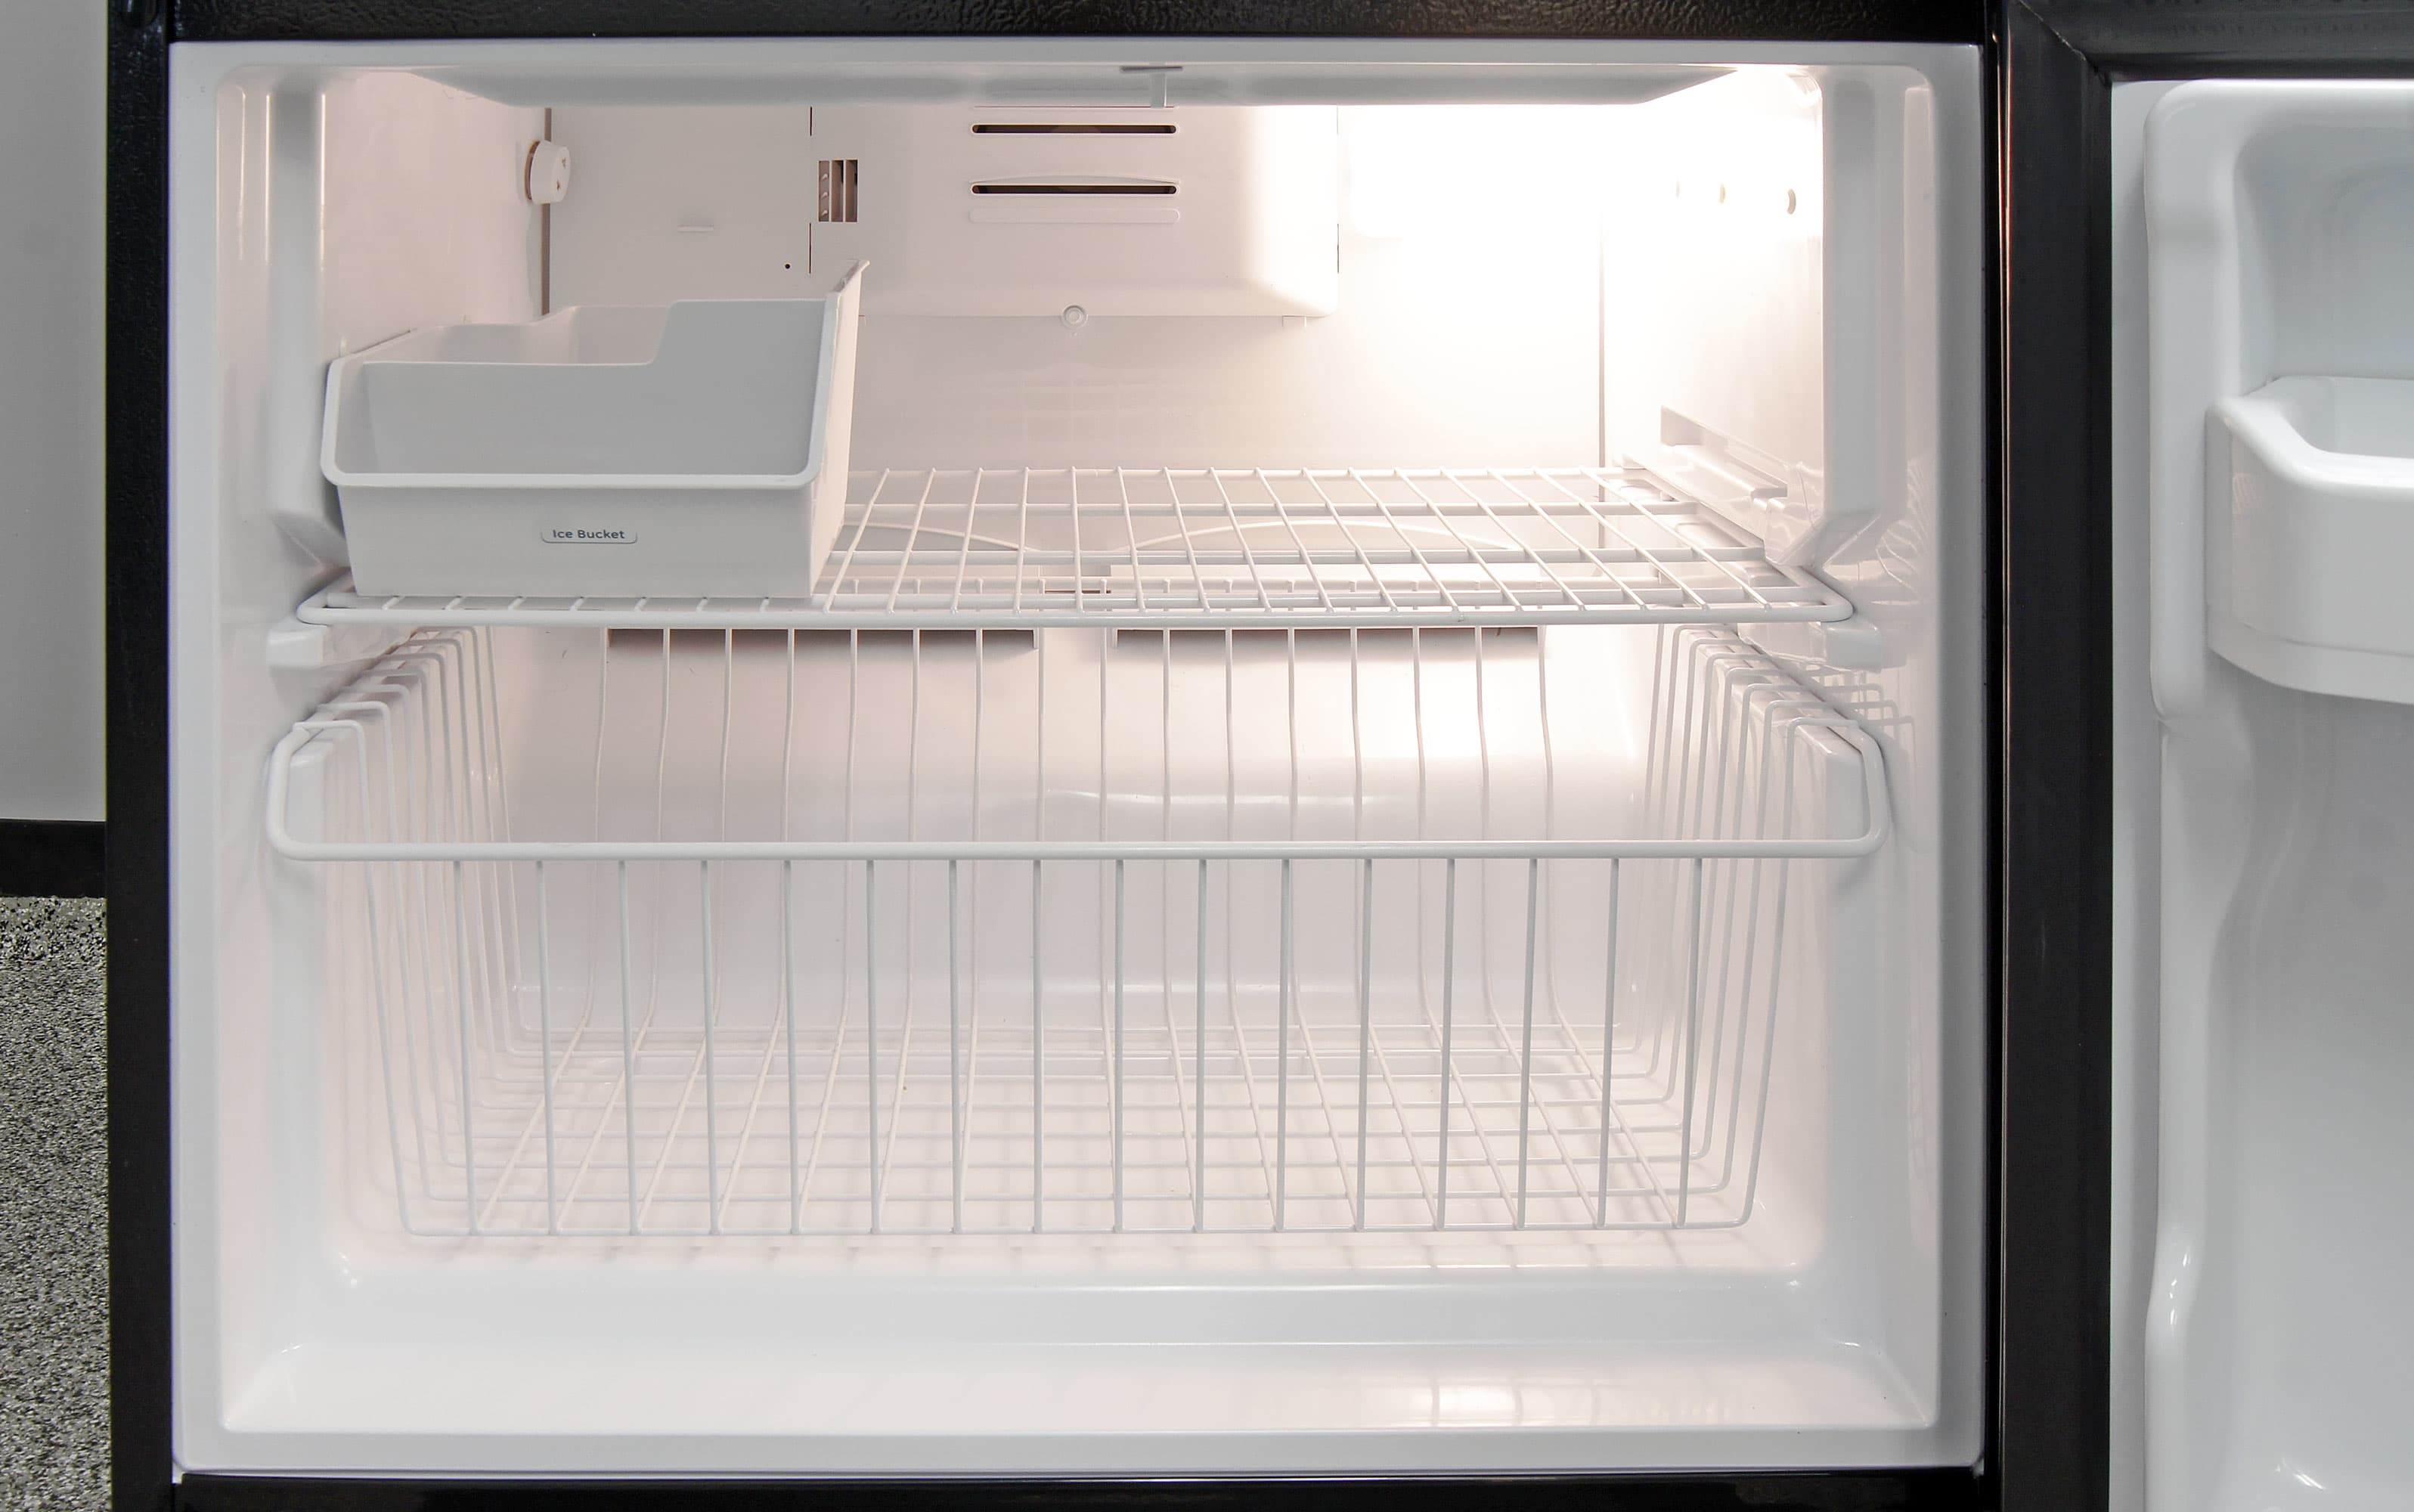 Even though the freezer comes with an optional ice bucket, the GE Artistry ABE20EGEBS has no interior icemaker of any kind.